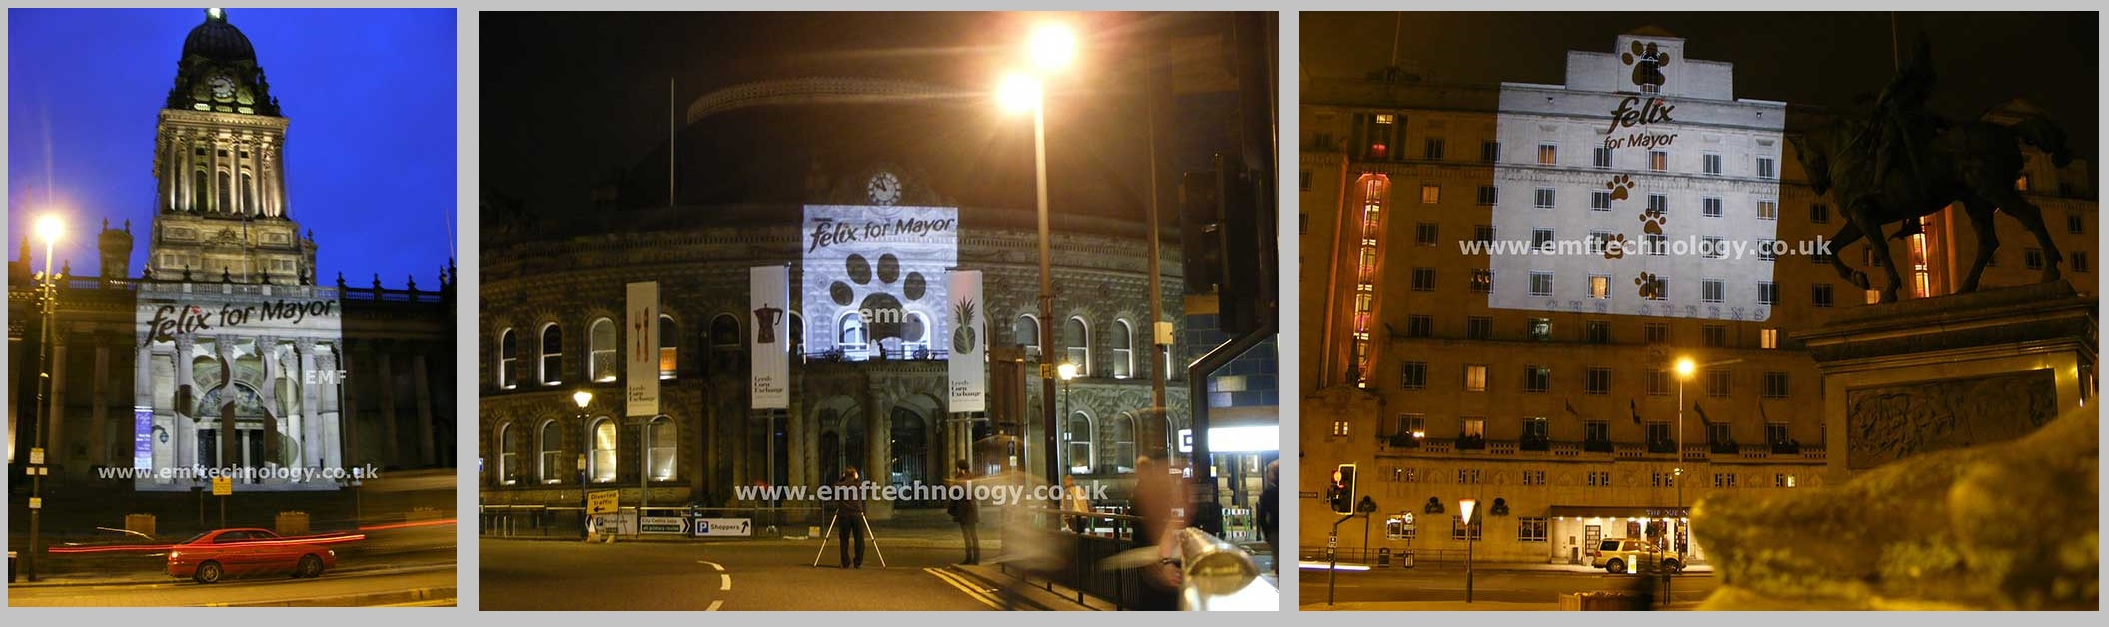 Outdoor Building Projection Advertising Campaign Leeds